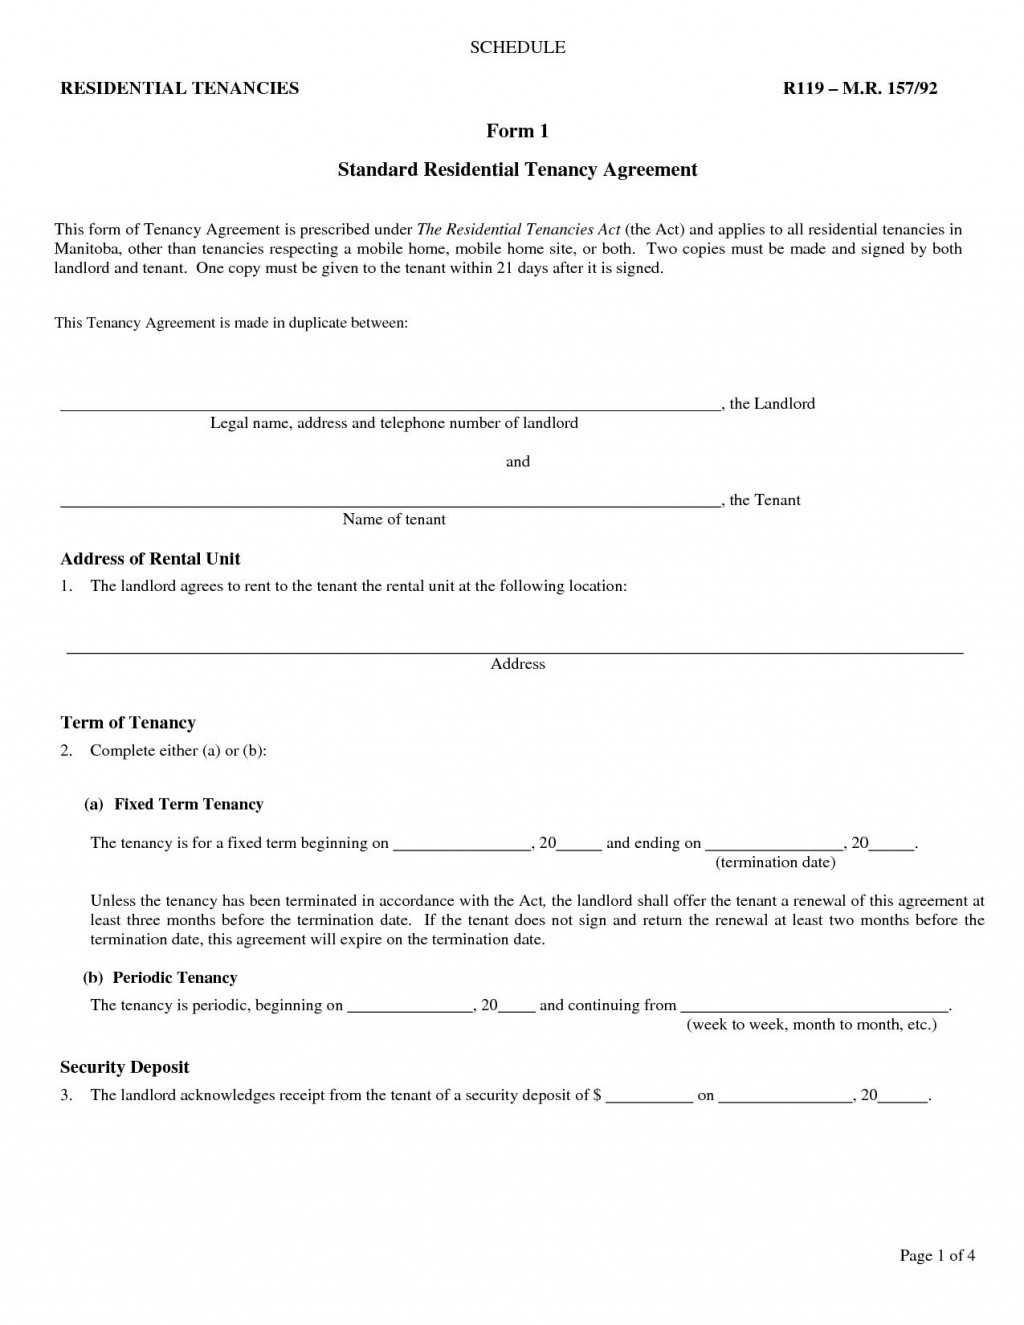 002 Surprising Renter Lease Agreement Template High Definition  Apartment Form Early Termination Of By Tenant South Africa FreeLarge